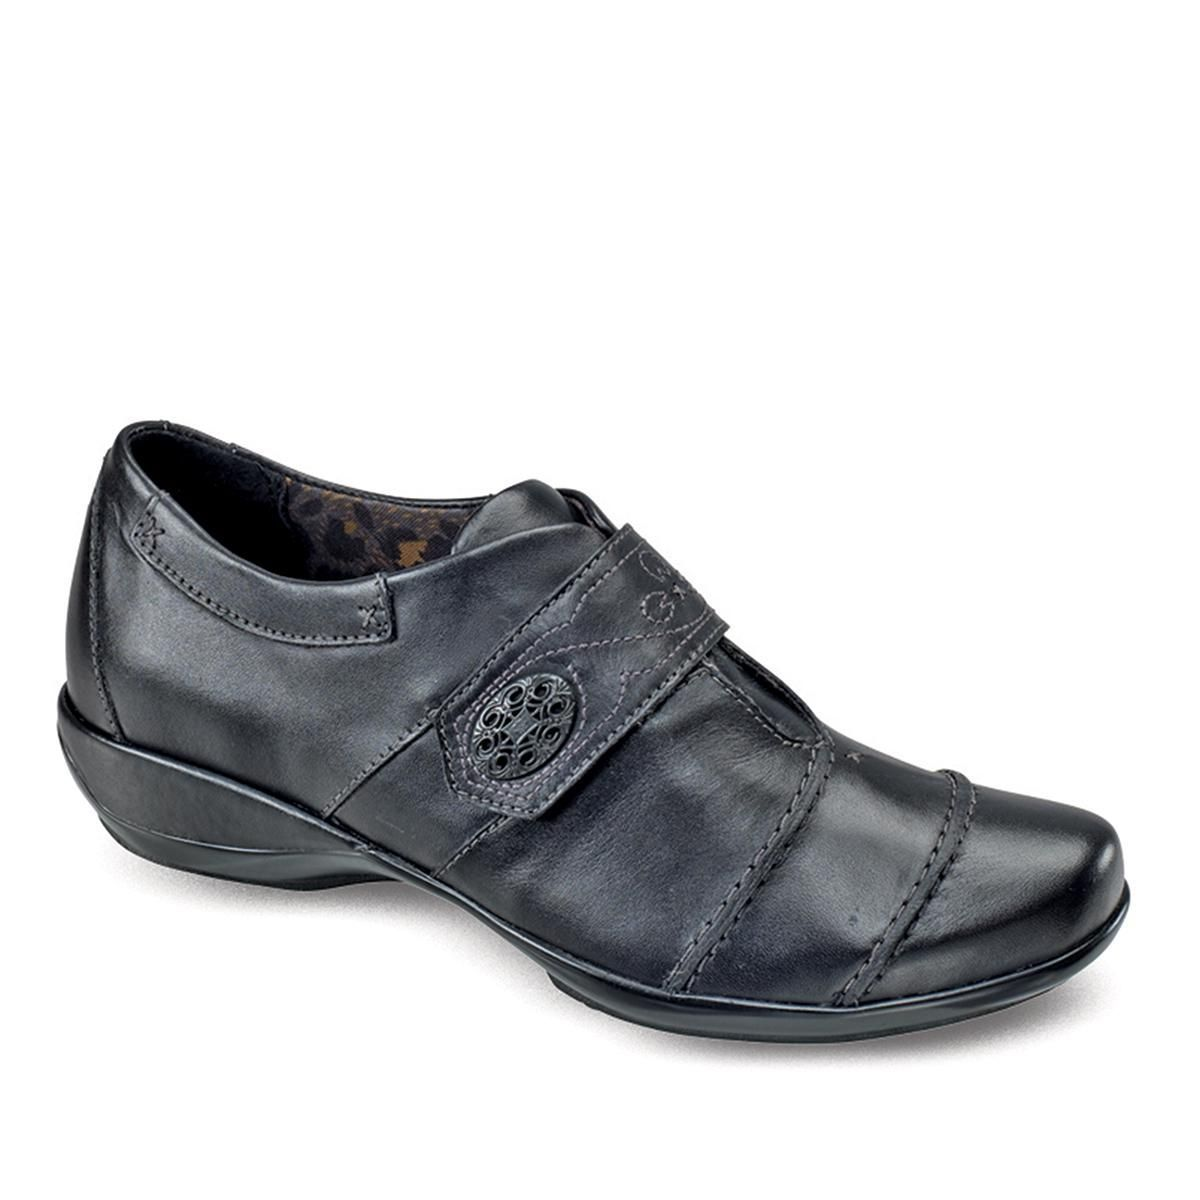 Aetrex Corinne Leather Shoe 560-432 by